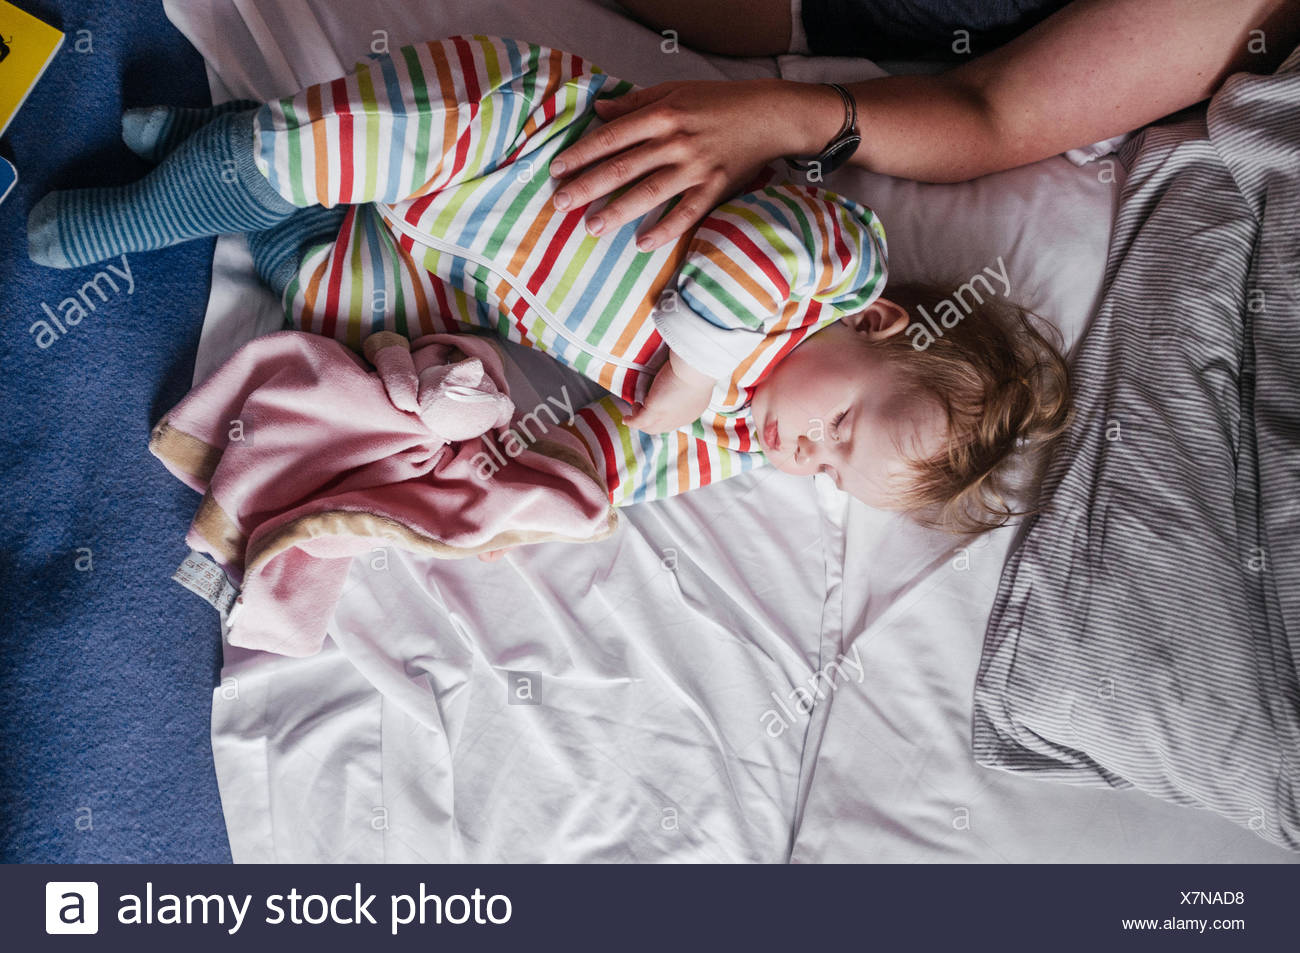 Cropped image of woman touching baby girl on bed - Stock Image